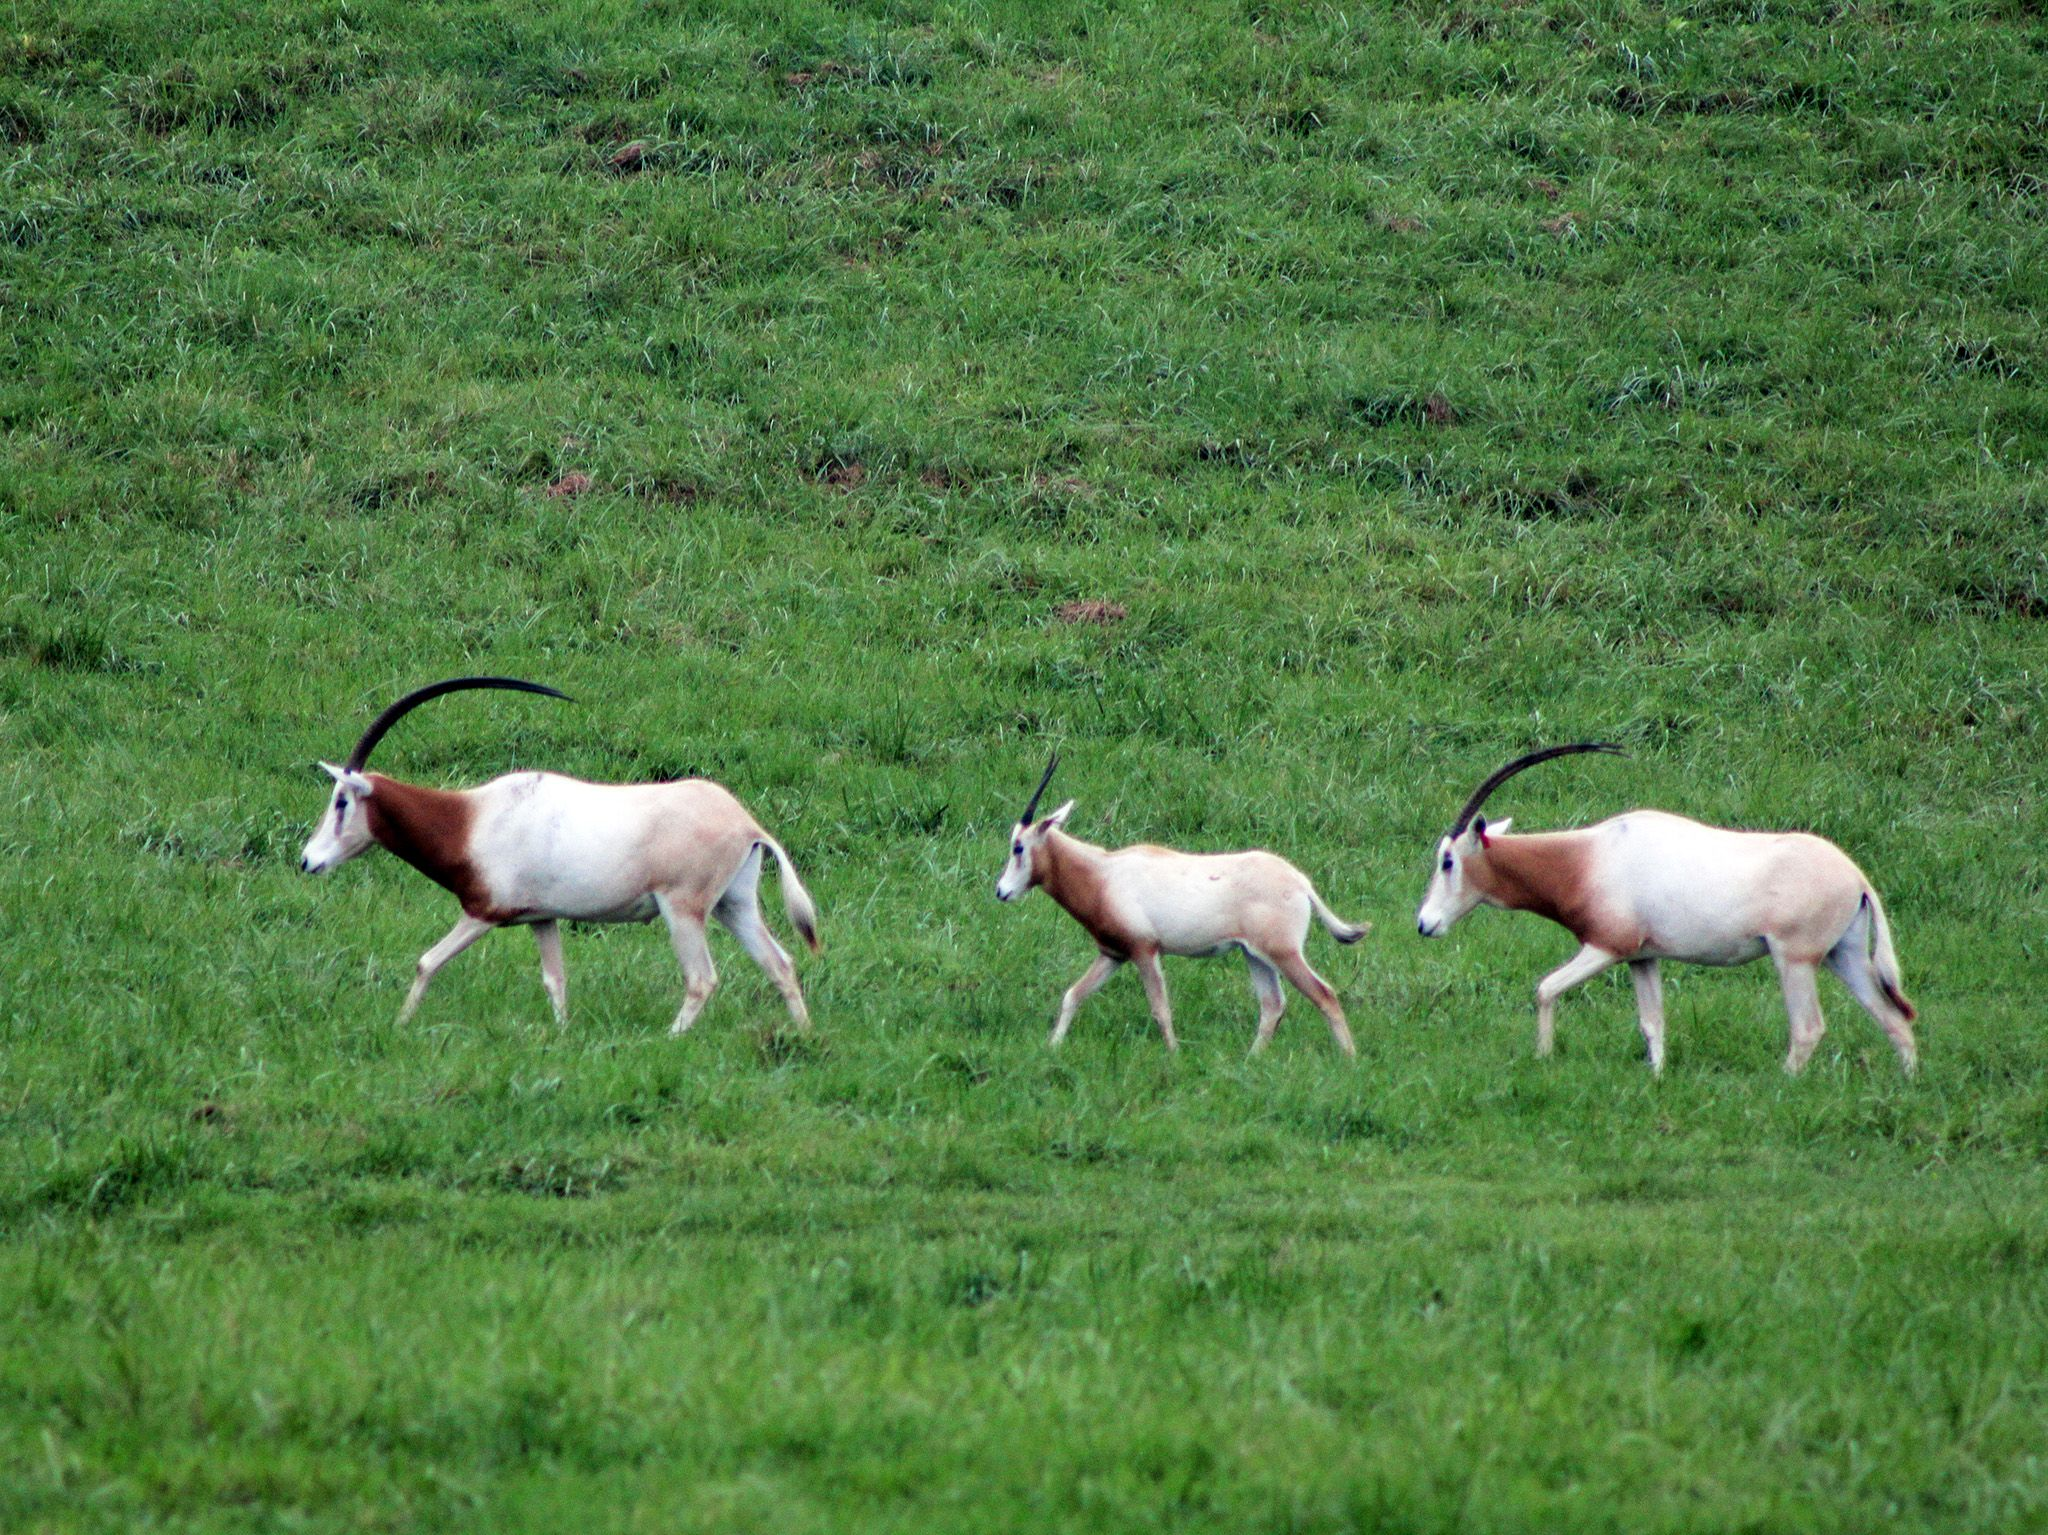 Oryx herd in the Wilds.  This image is from Secrets of the Zoo. [Photo of the day - August 2019]